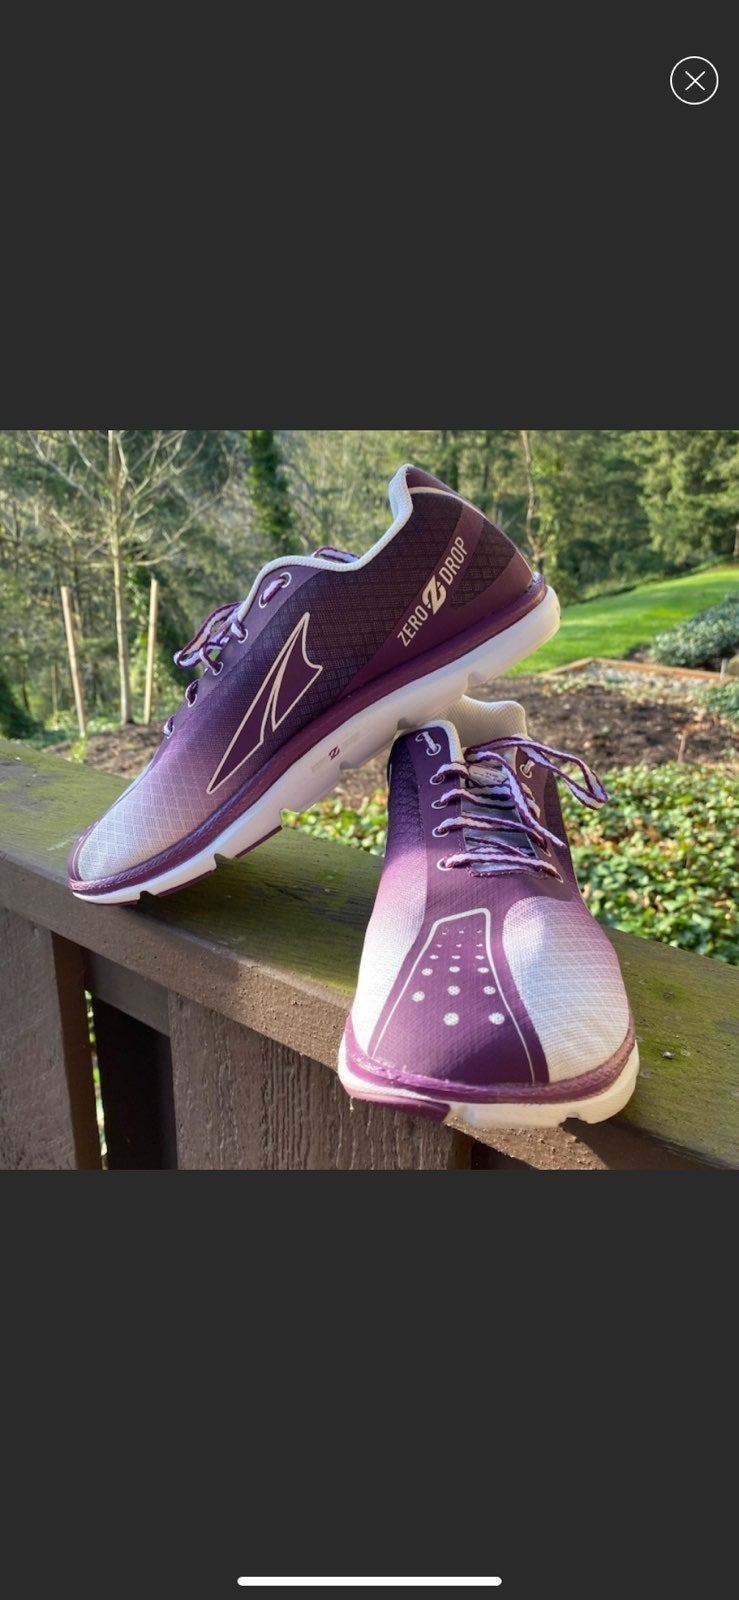 NWOB Altra The One running shoes 12